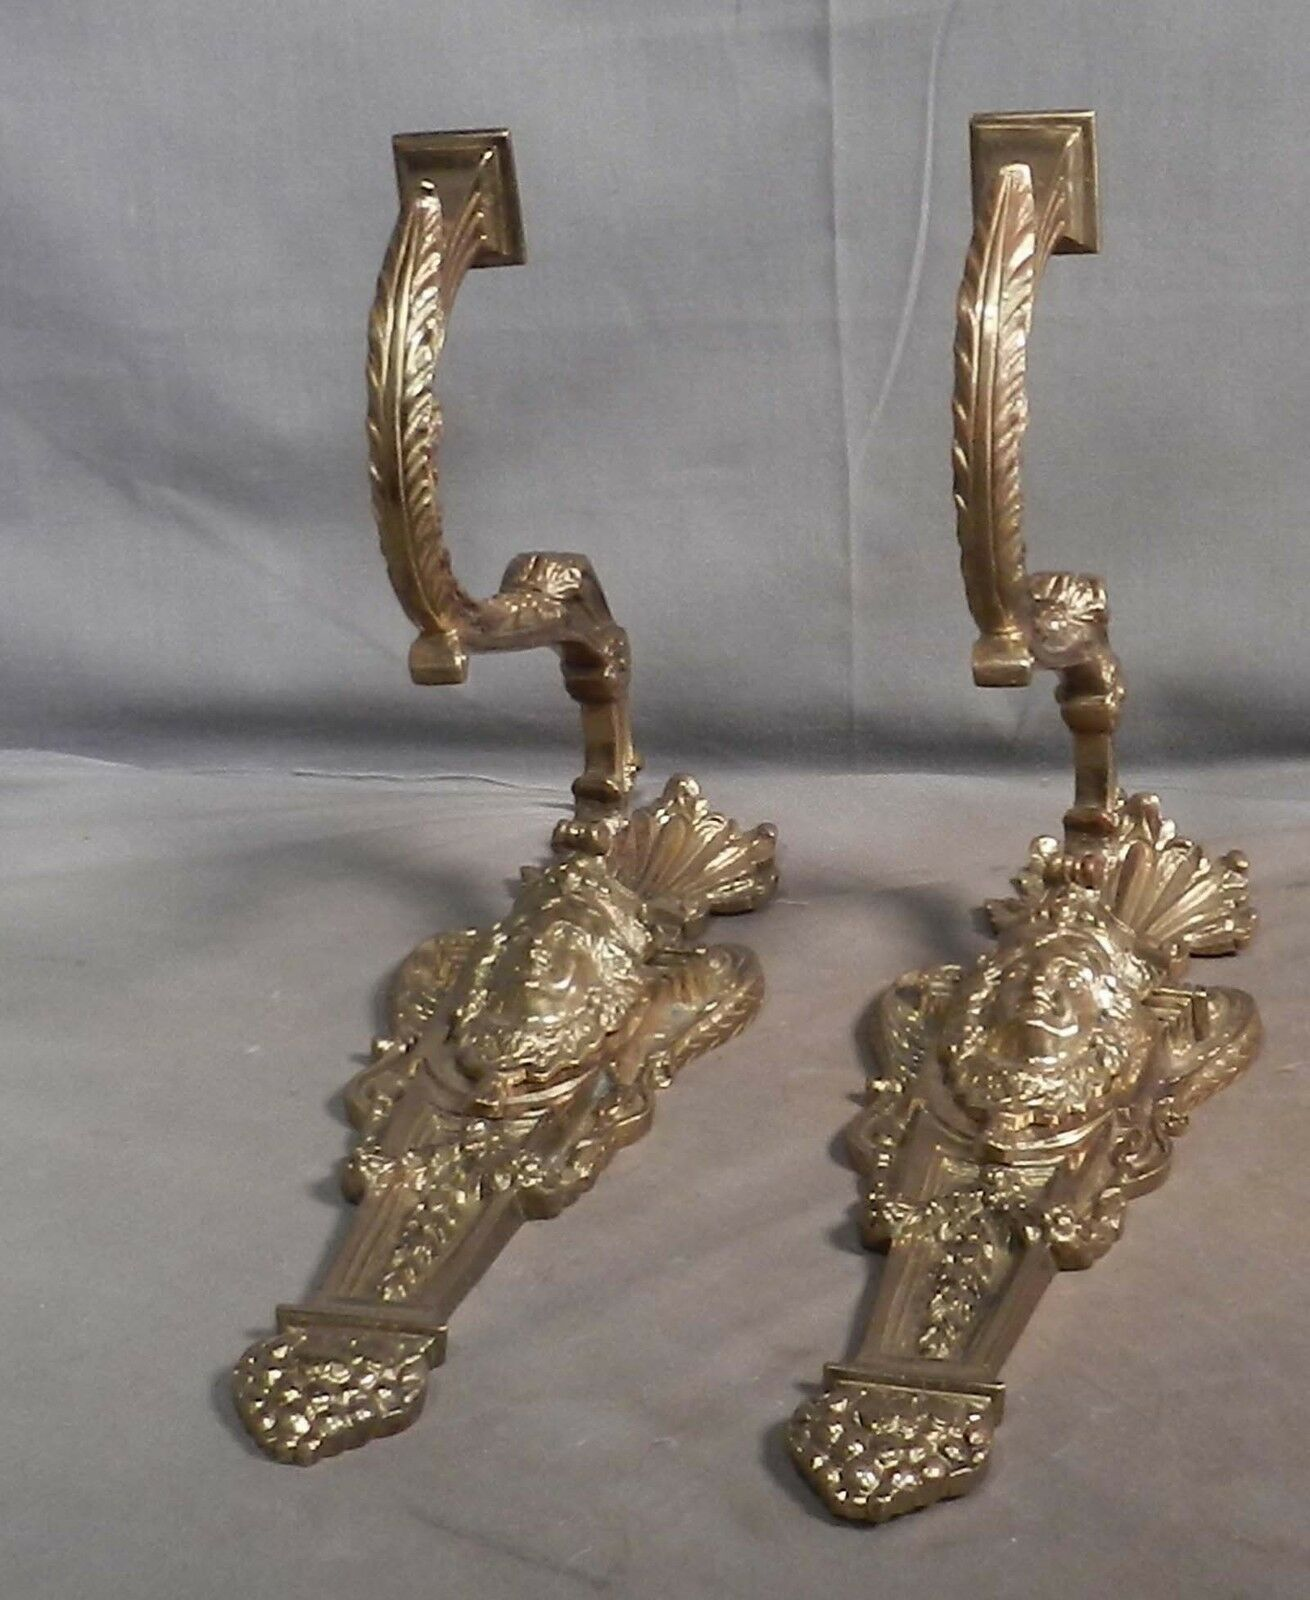 Ornate Brass Bronze 19th c. French Wall Sconce Light MASKS Baroque Shell Empire